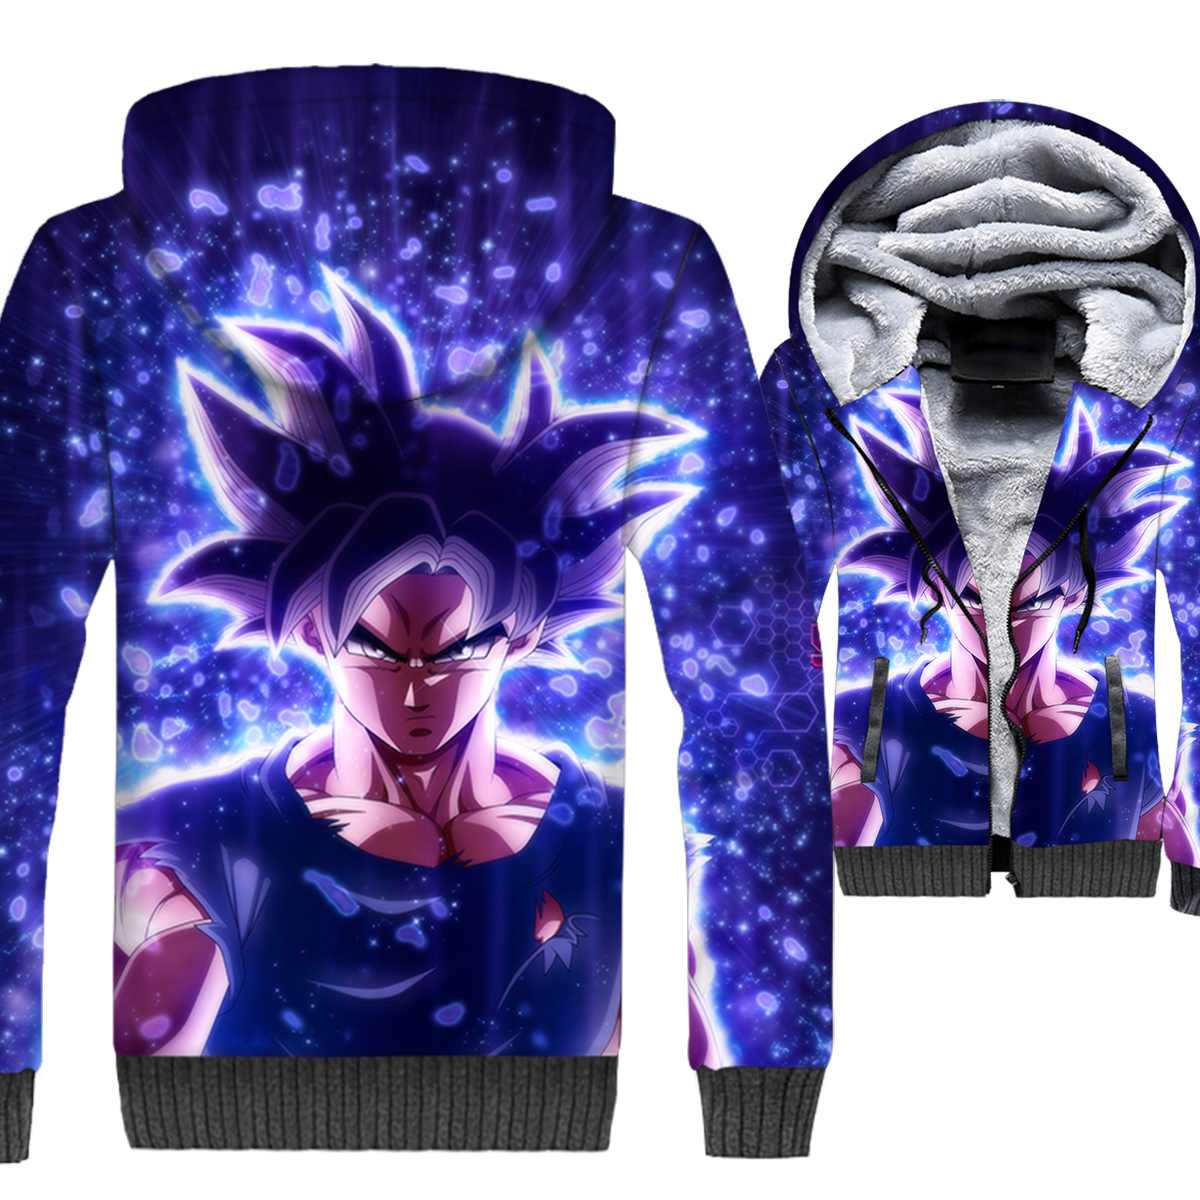 Anime Dragon Ball Hoodies Men Super Saiyan Sweatshirts Harajuku Coat Winter Thick Fleece Warm Vegeta 3D Jackets Cool Streetwear